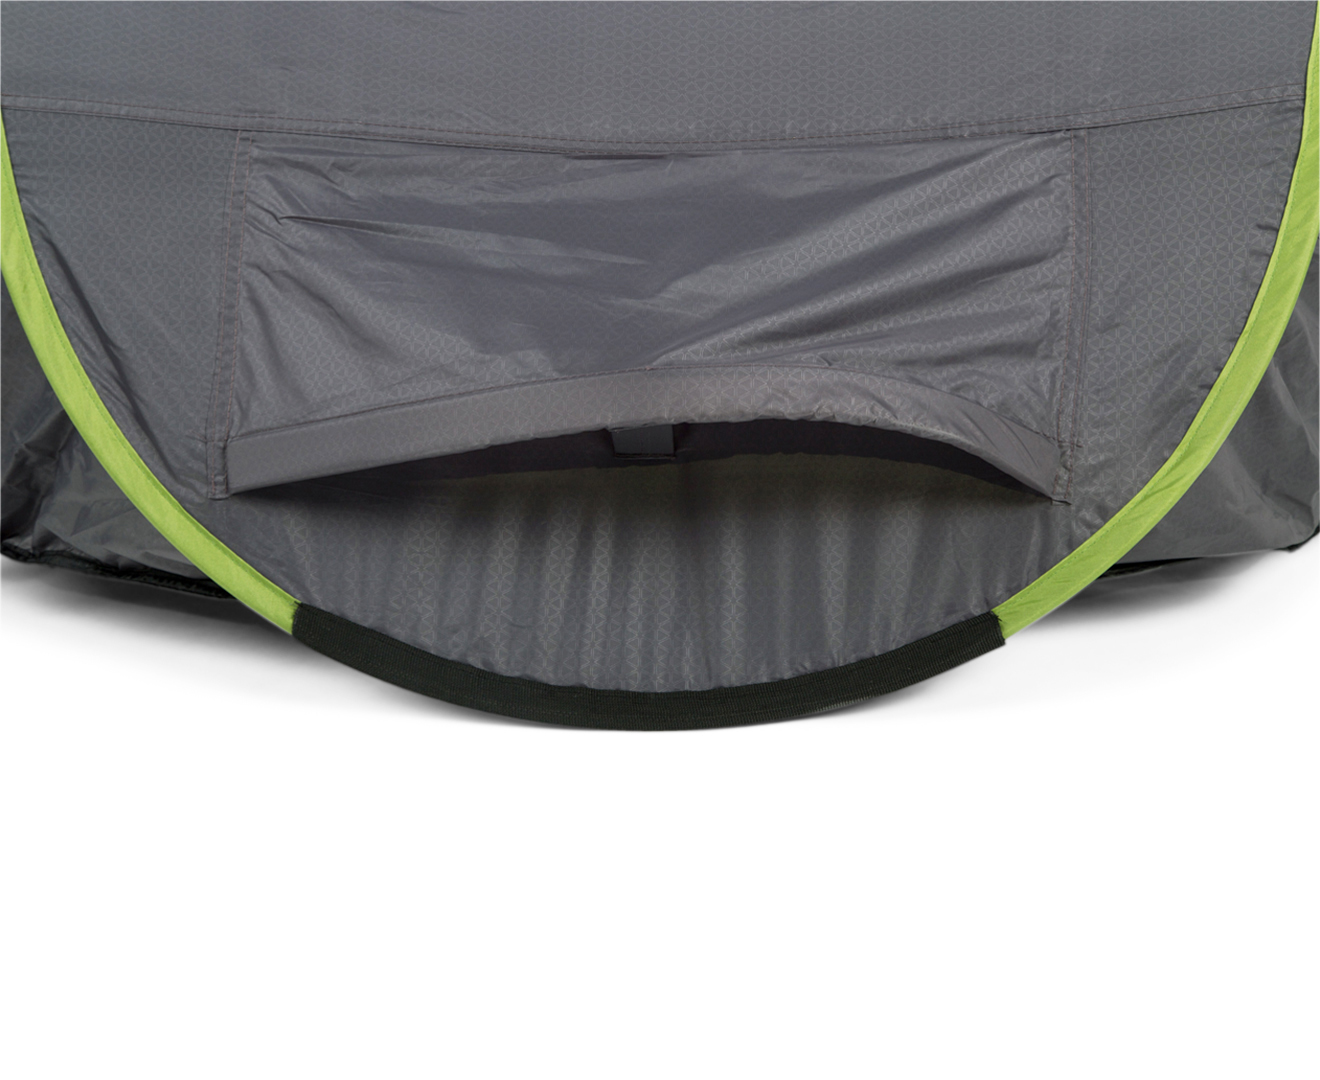 $131.98  sc 1 st  eBay & Caribee Get Up 2-Person Instant Pop-Up Tent - Grey/Green | eBay